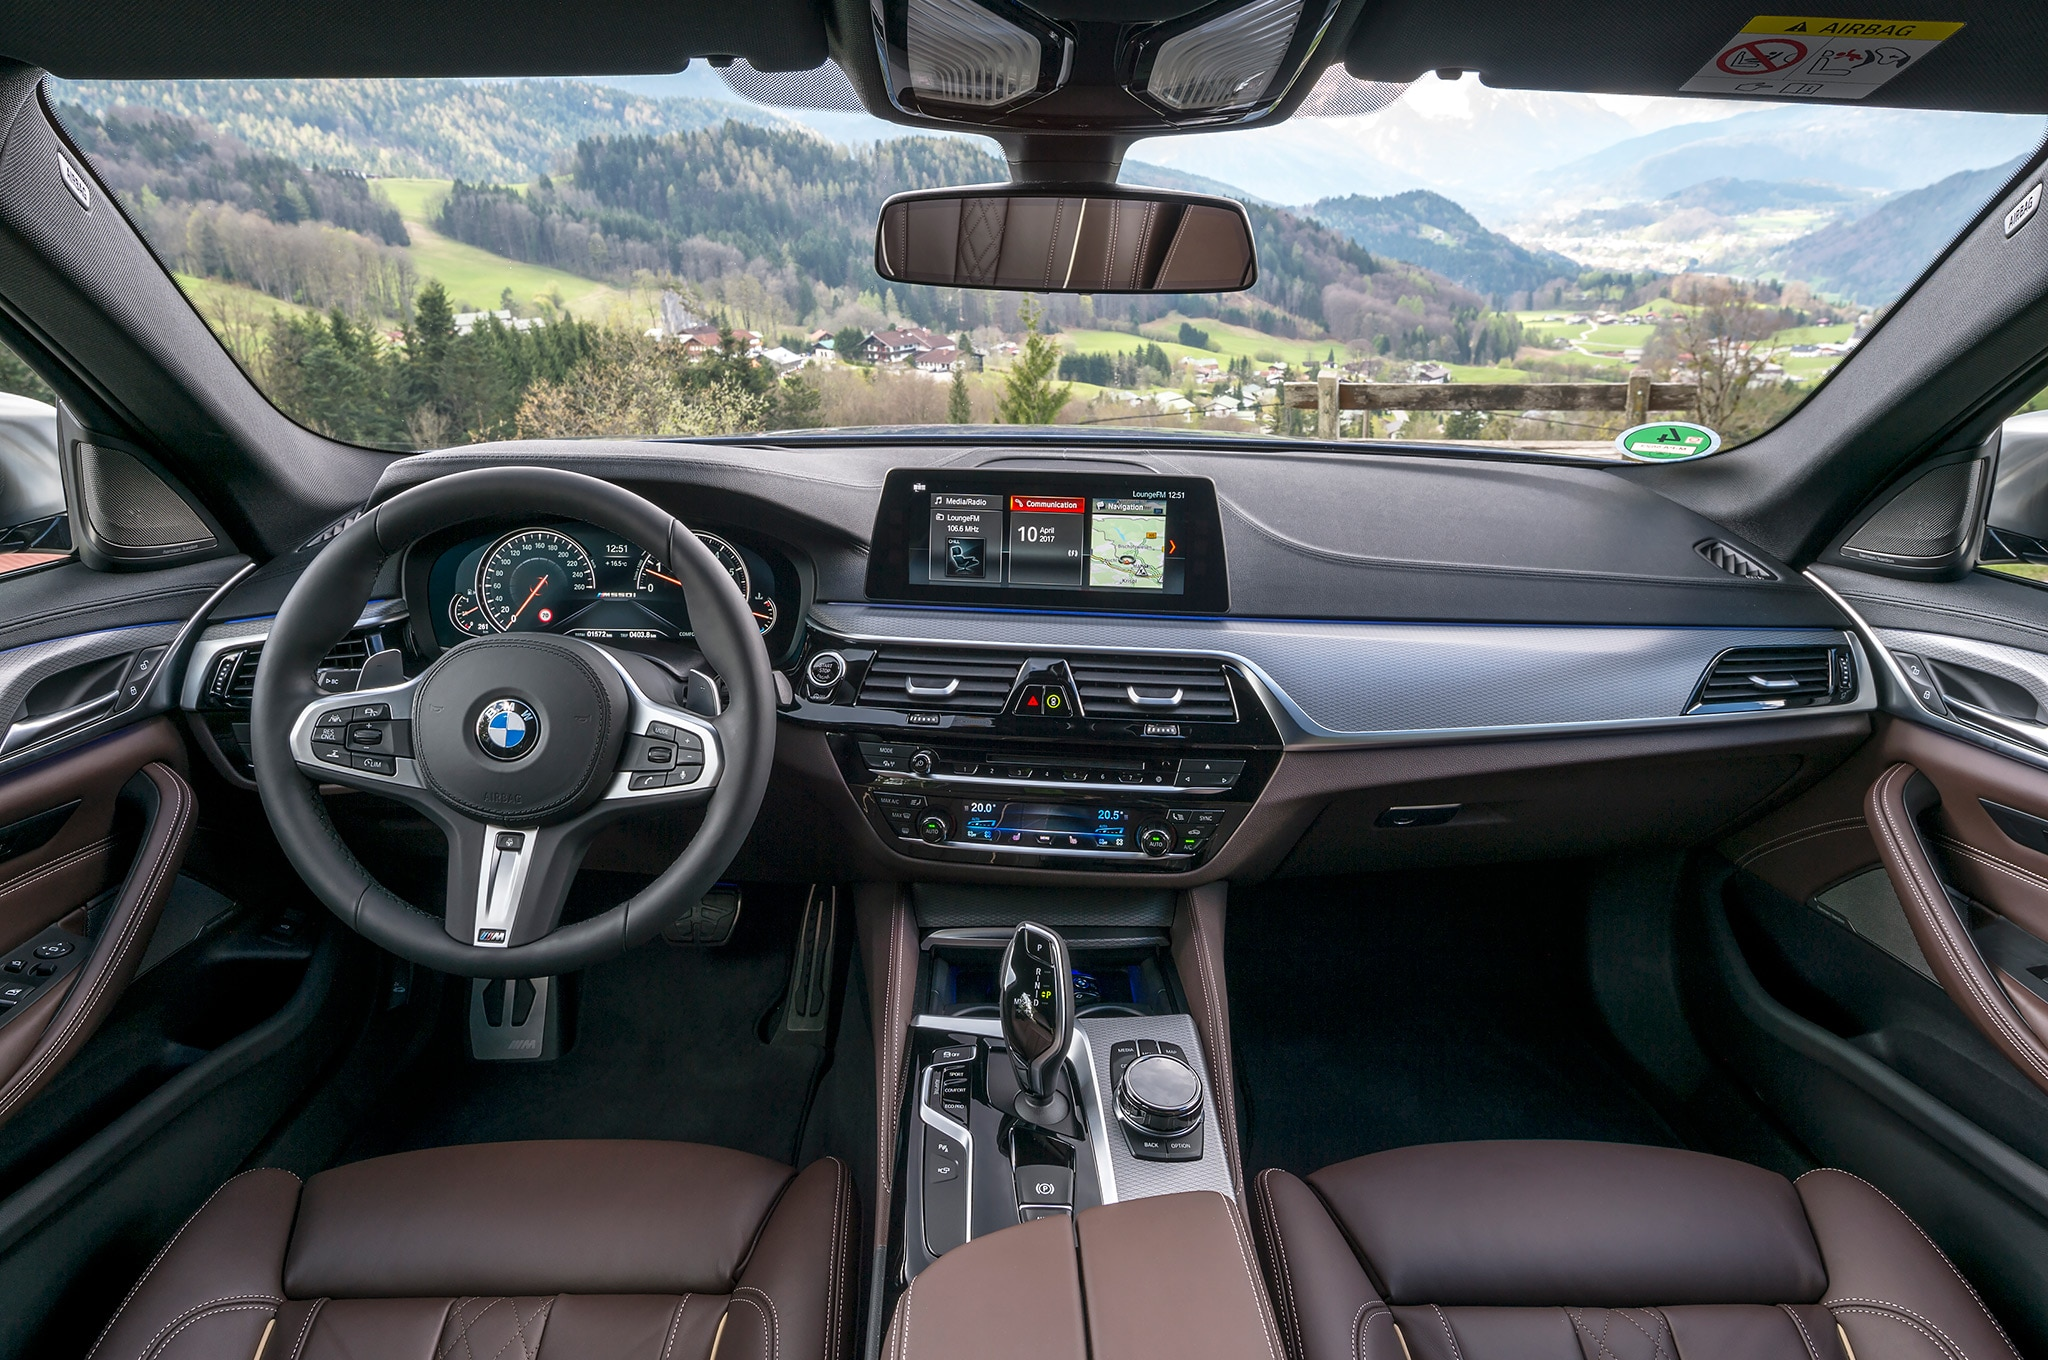 Image result for 2019 m550i interior